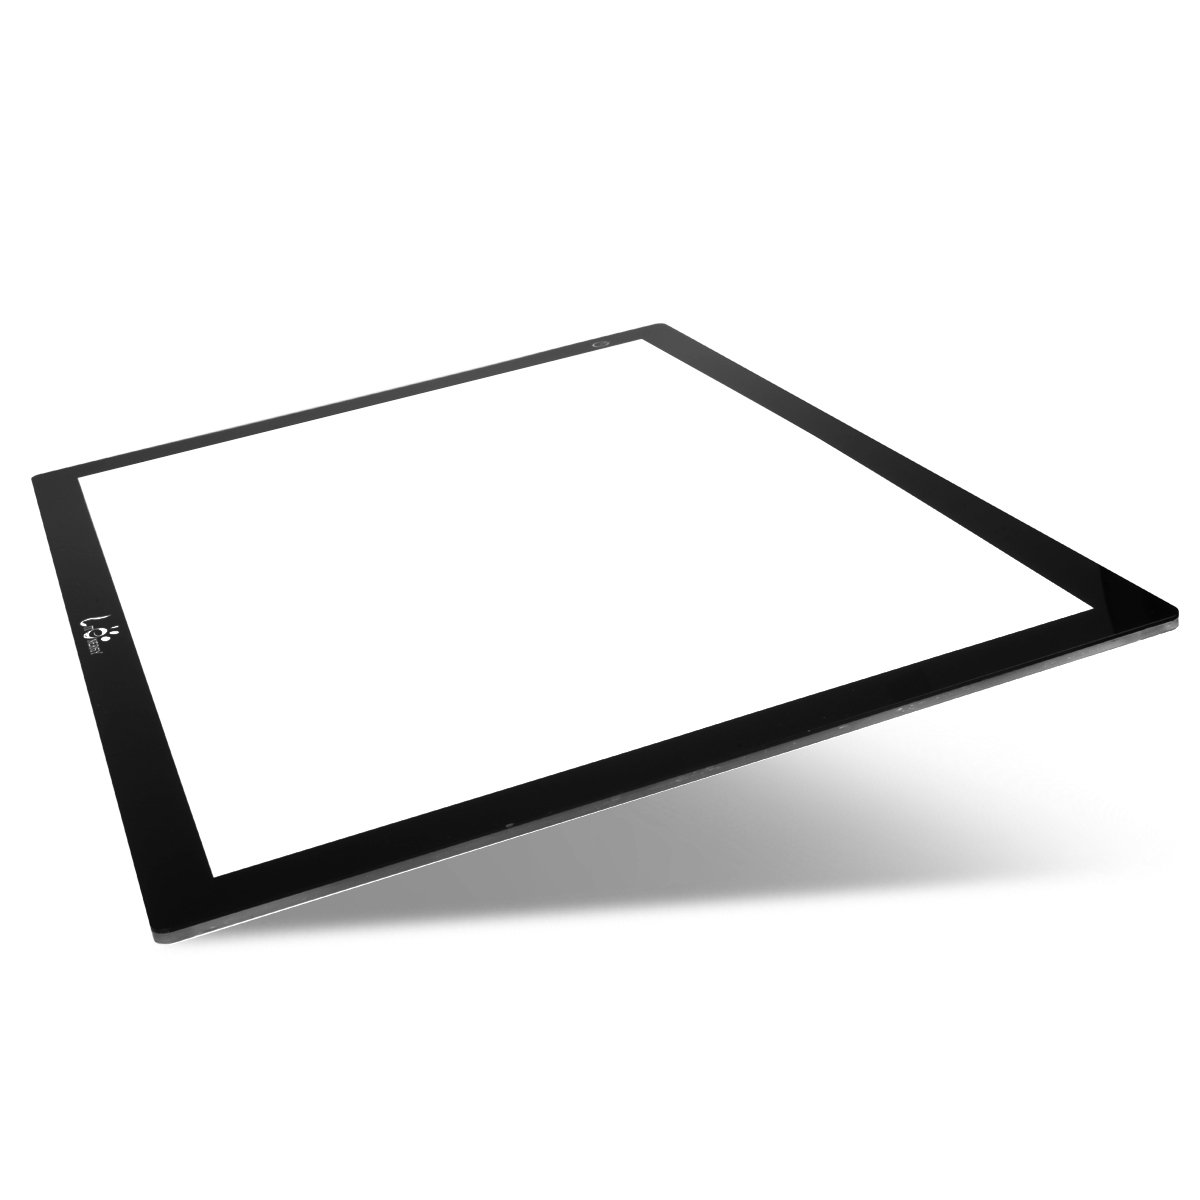 Sketching A4 Portable LED Light Box Trace Animation LITENERGY Light Pad USB Power LED Artcraft Tracing Light Table for Artists,Drawing